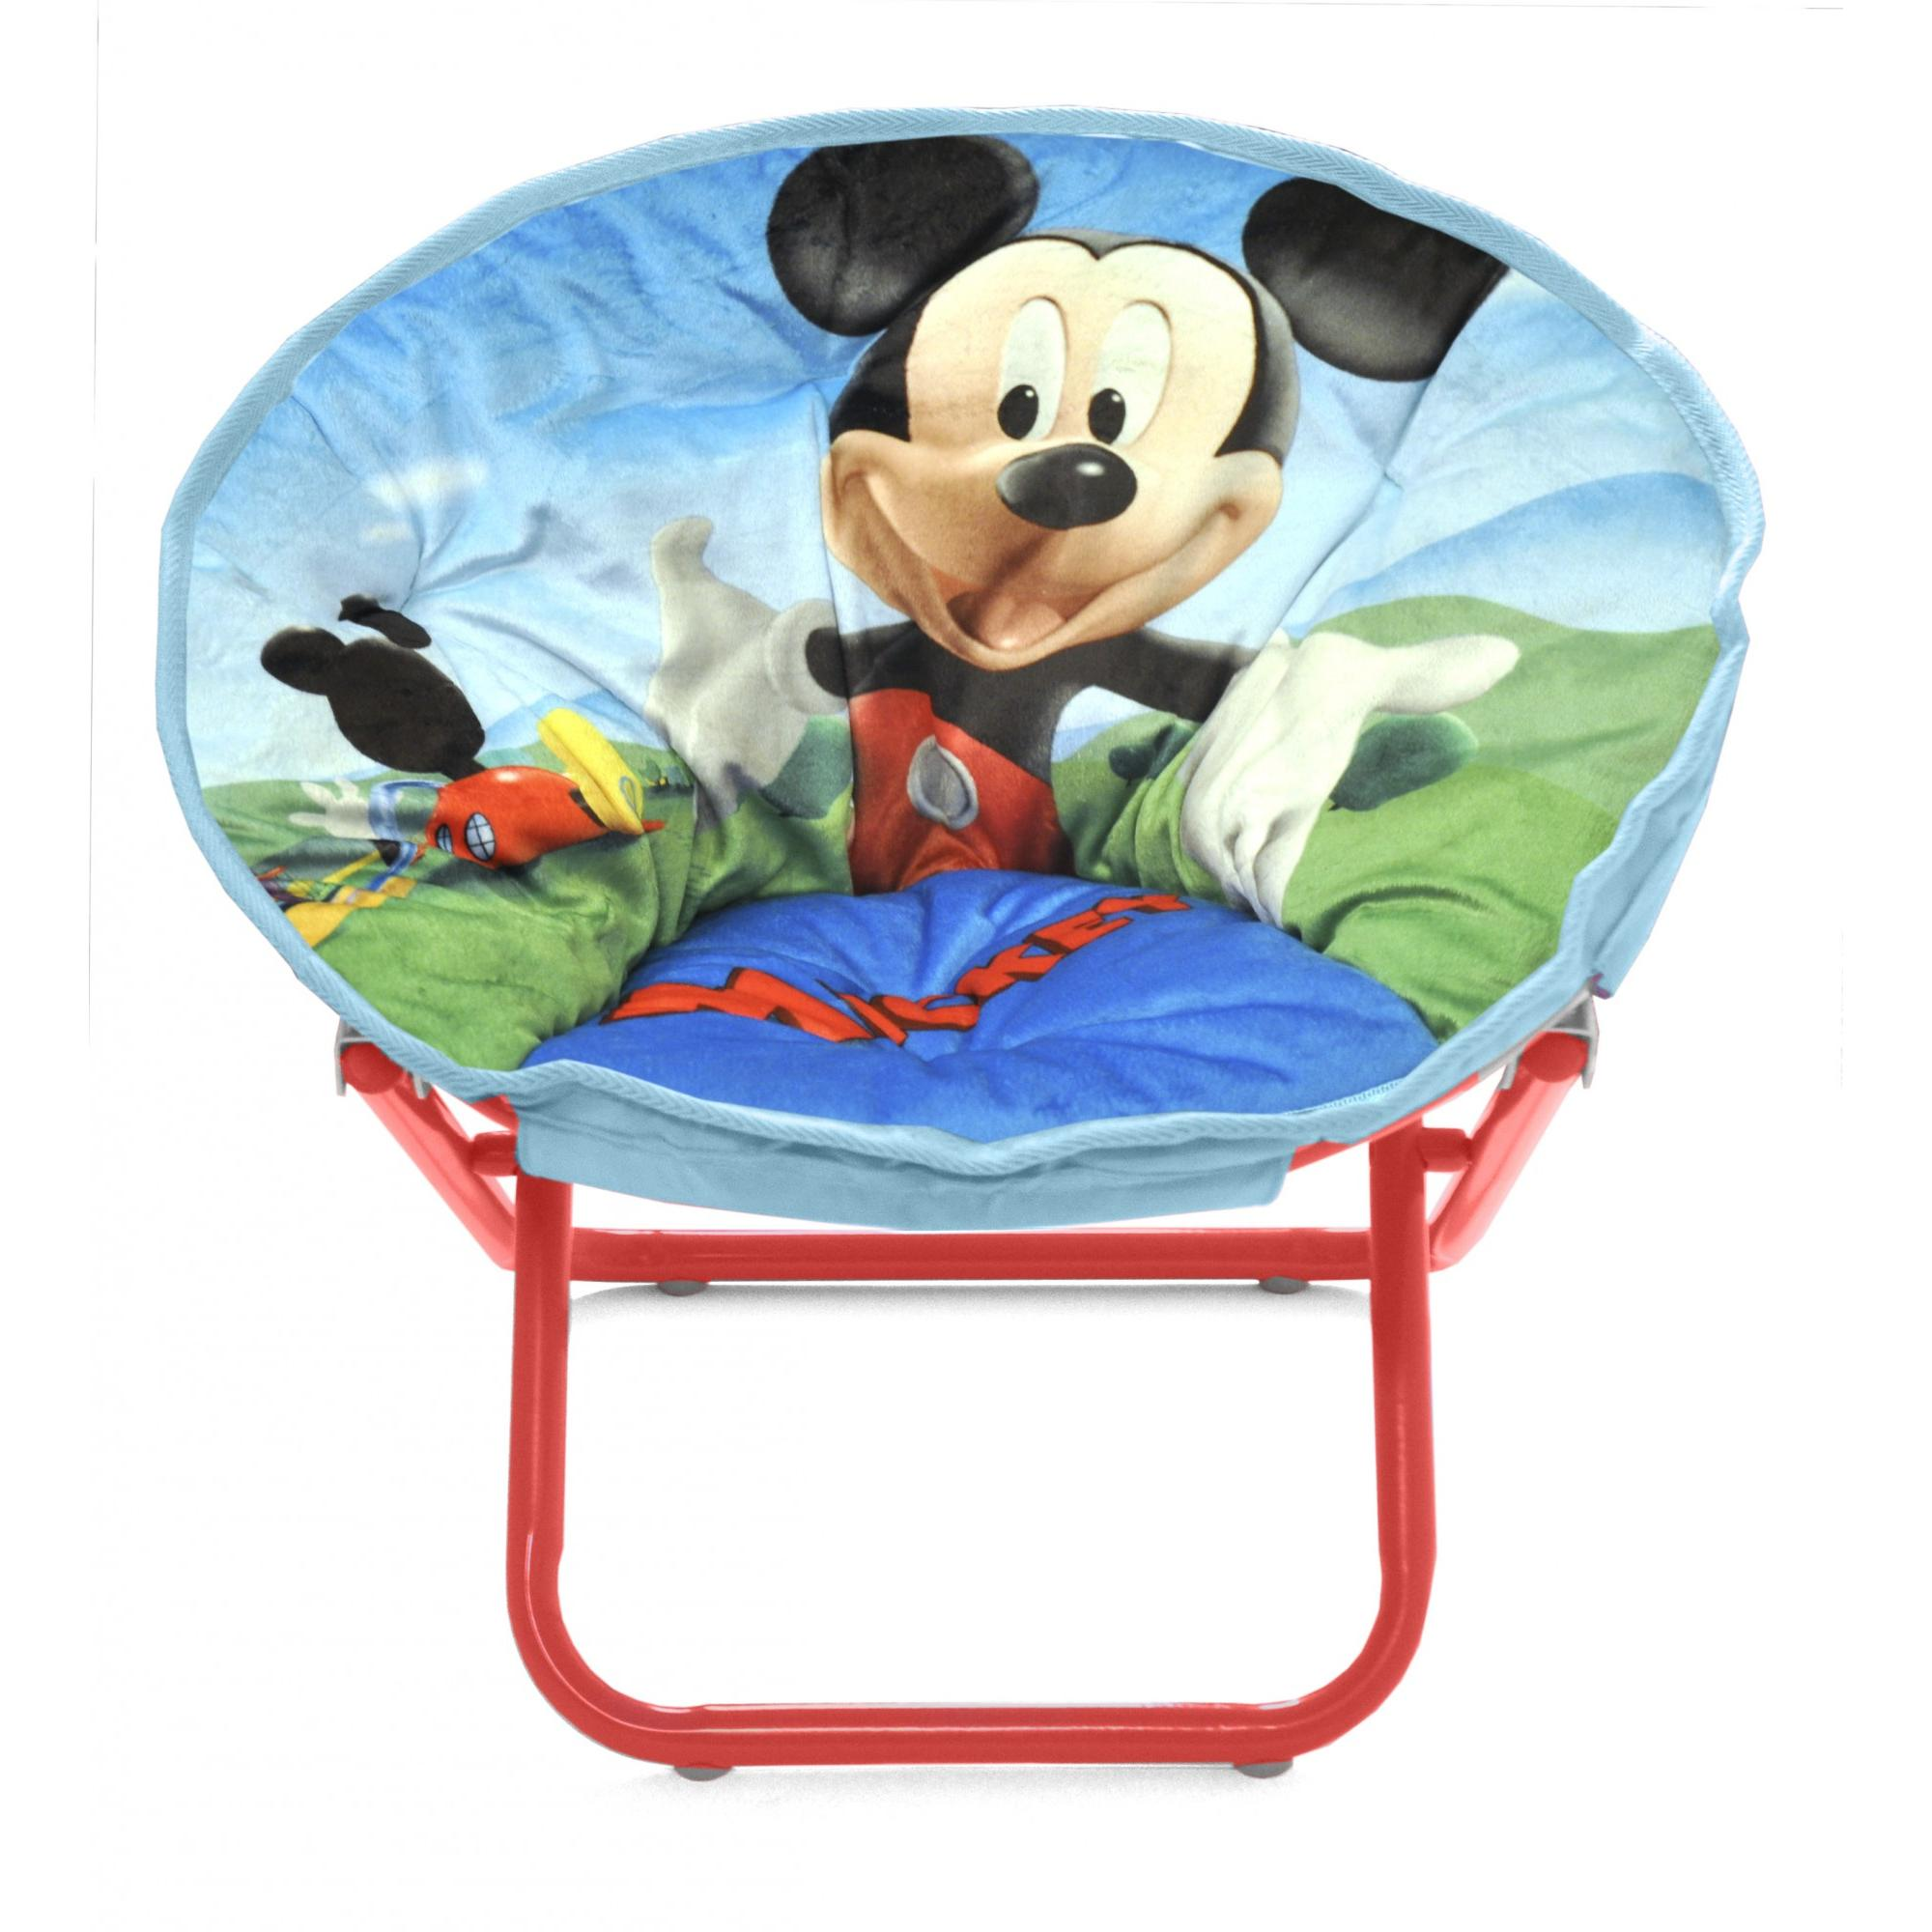 mickey mouse mini collapsible saucer chair with leopard print saucer chair.  sc 1 st  t&ahomes.us & Leopard Print Saucer Chair. Disney Frozen Saucer Chair In Blue Bed ...